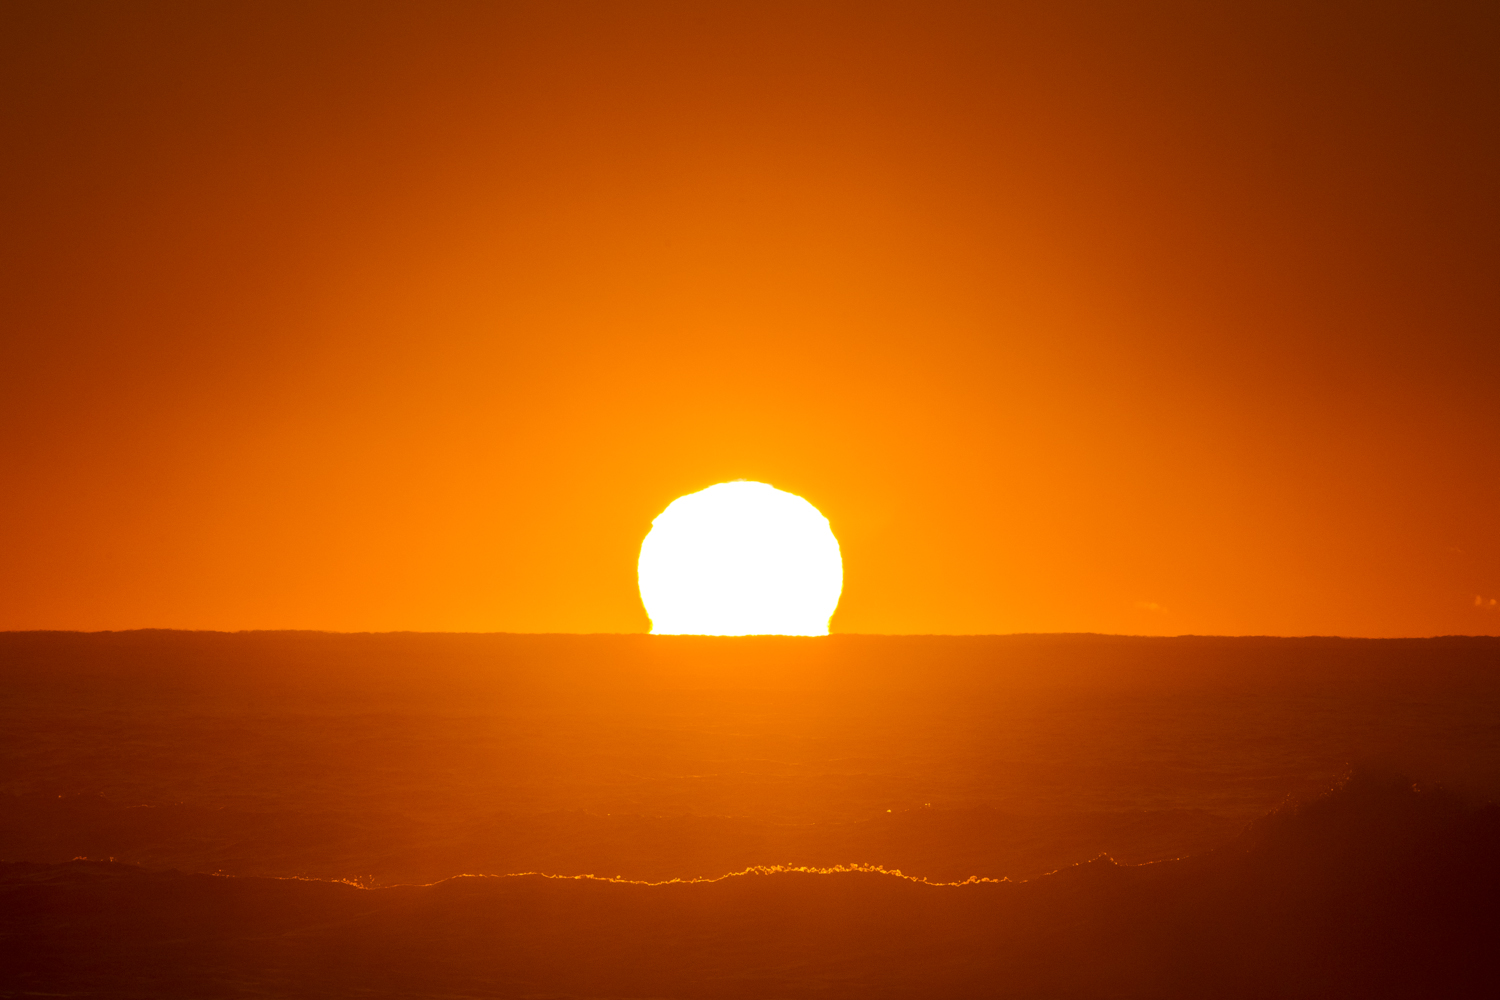 The sun peeking over the horizon, bringing life to another day of waves.